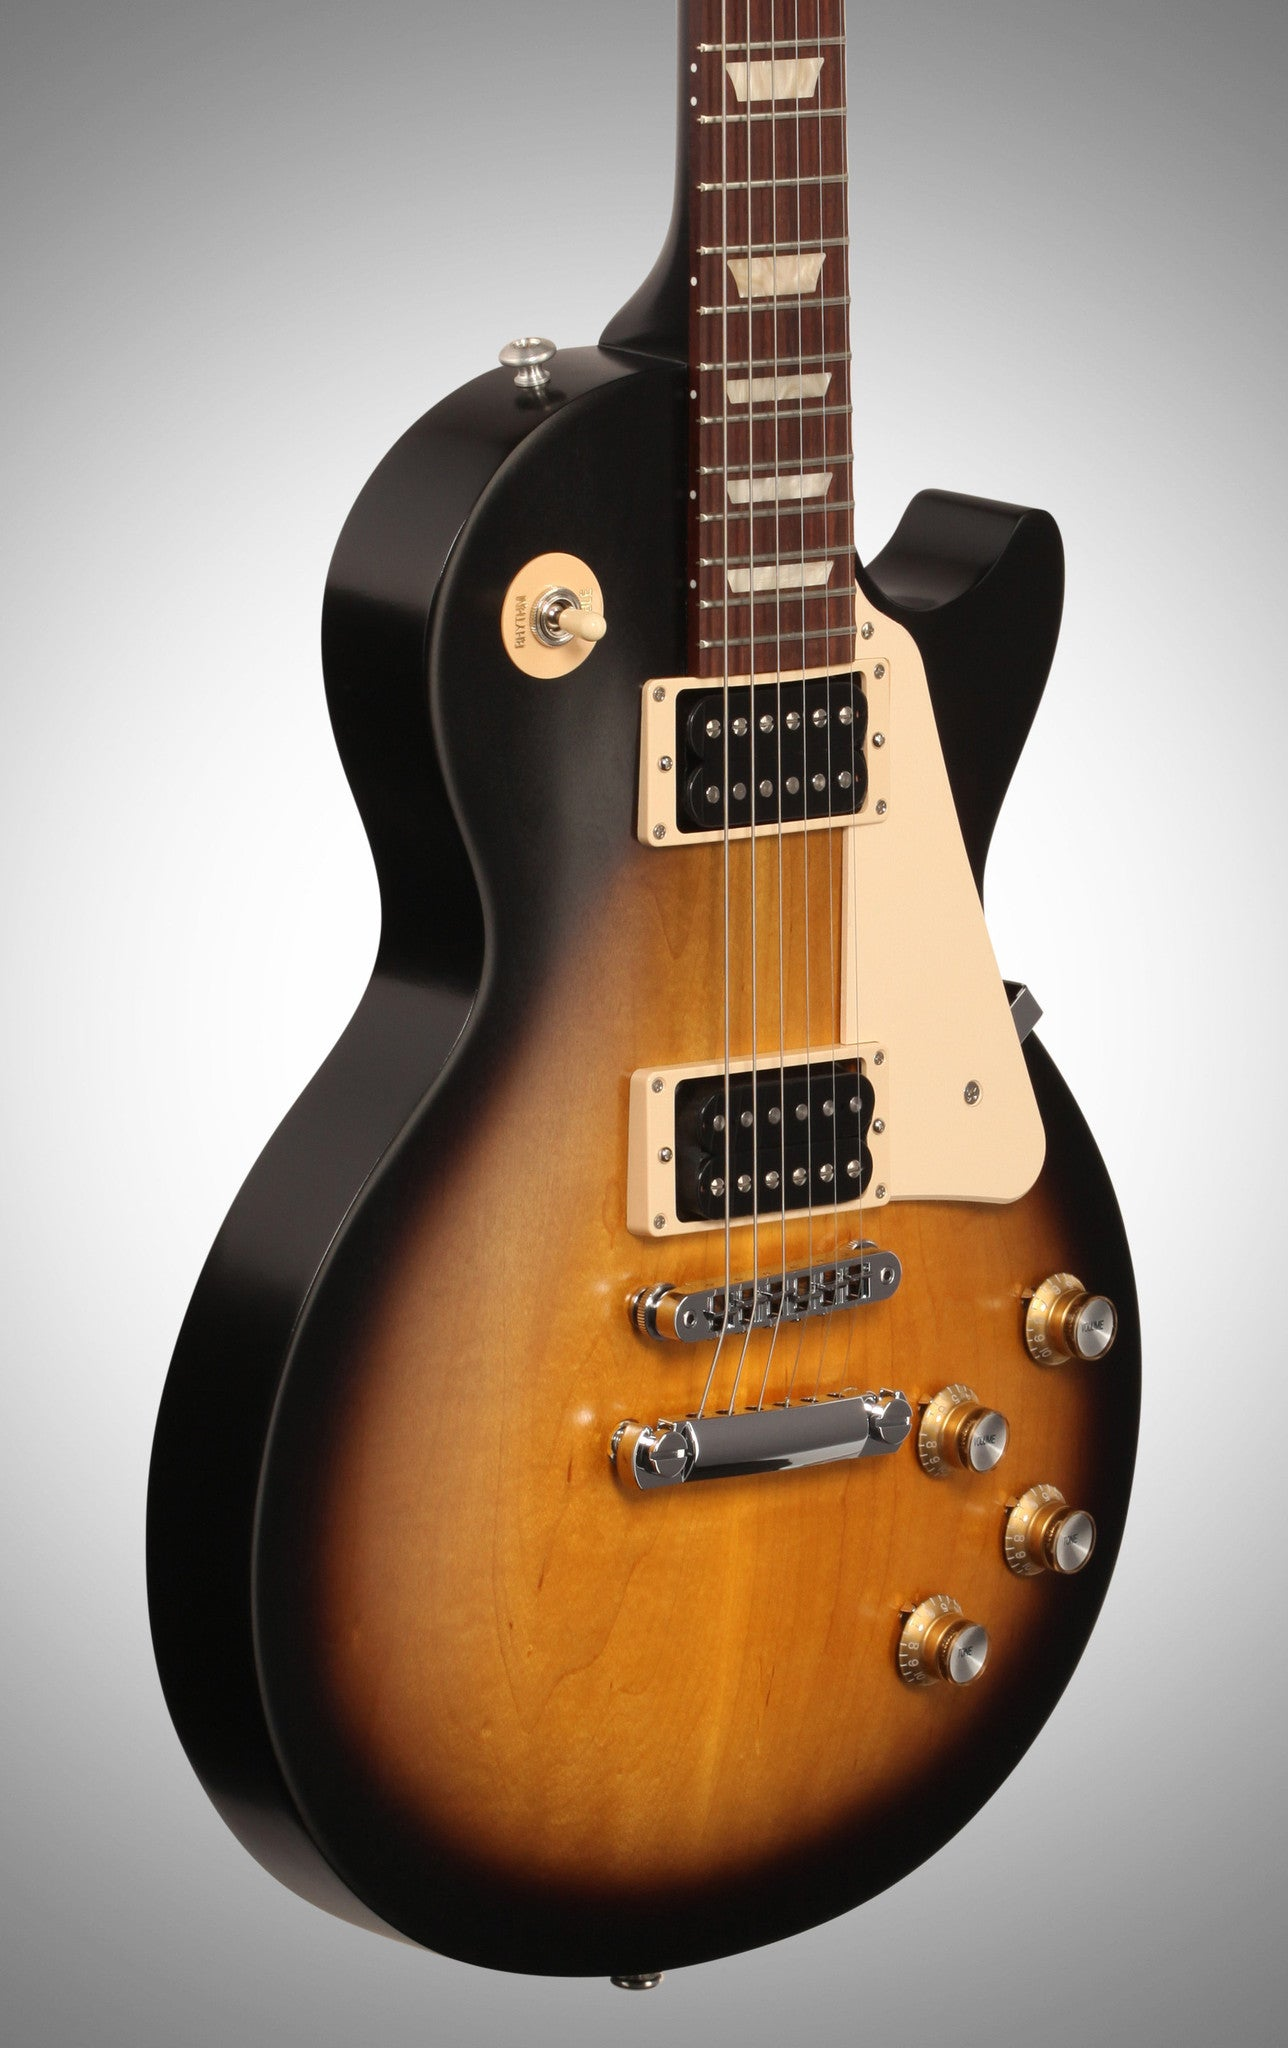 Gibson 2016 Les Paul '50s Tribute T Electric Guitar (with Gig Bag), Vintage Sunburst - HIENDGUITAR   Gibson gibson2016